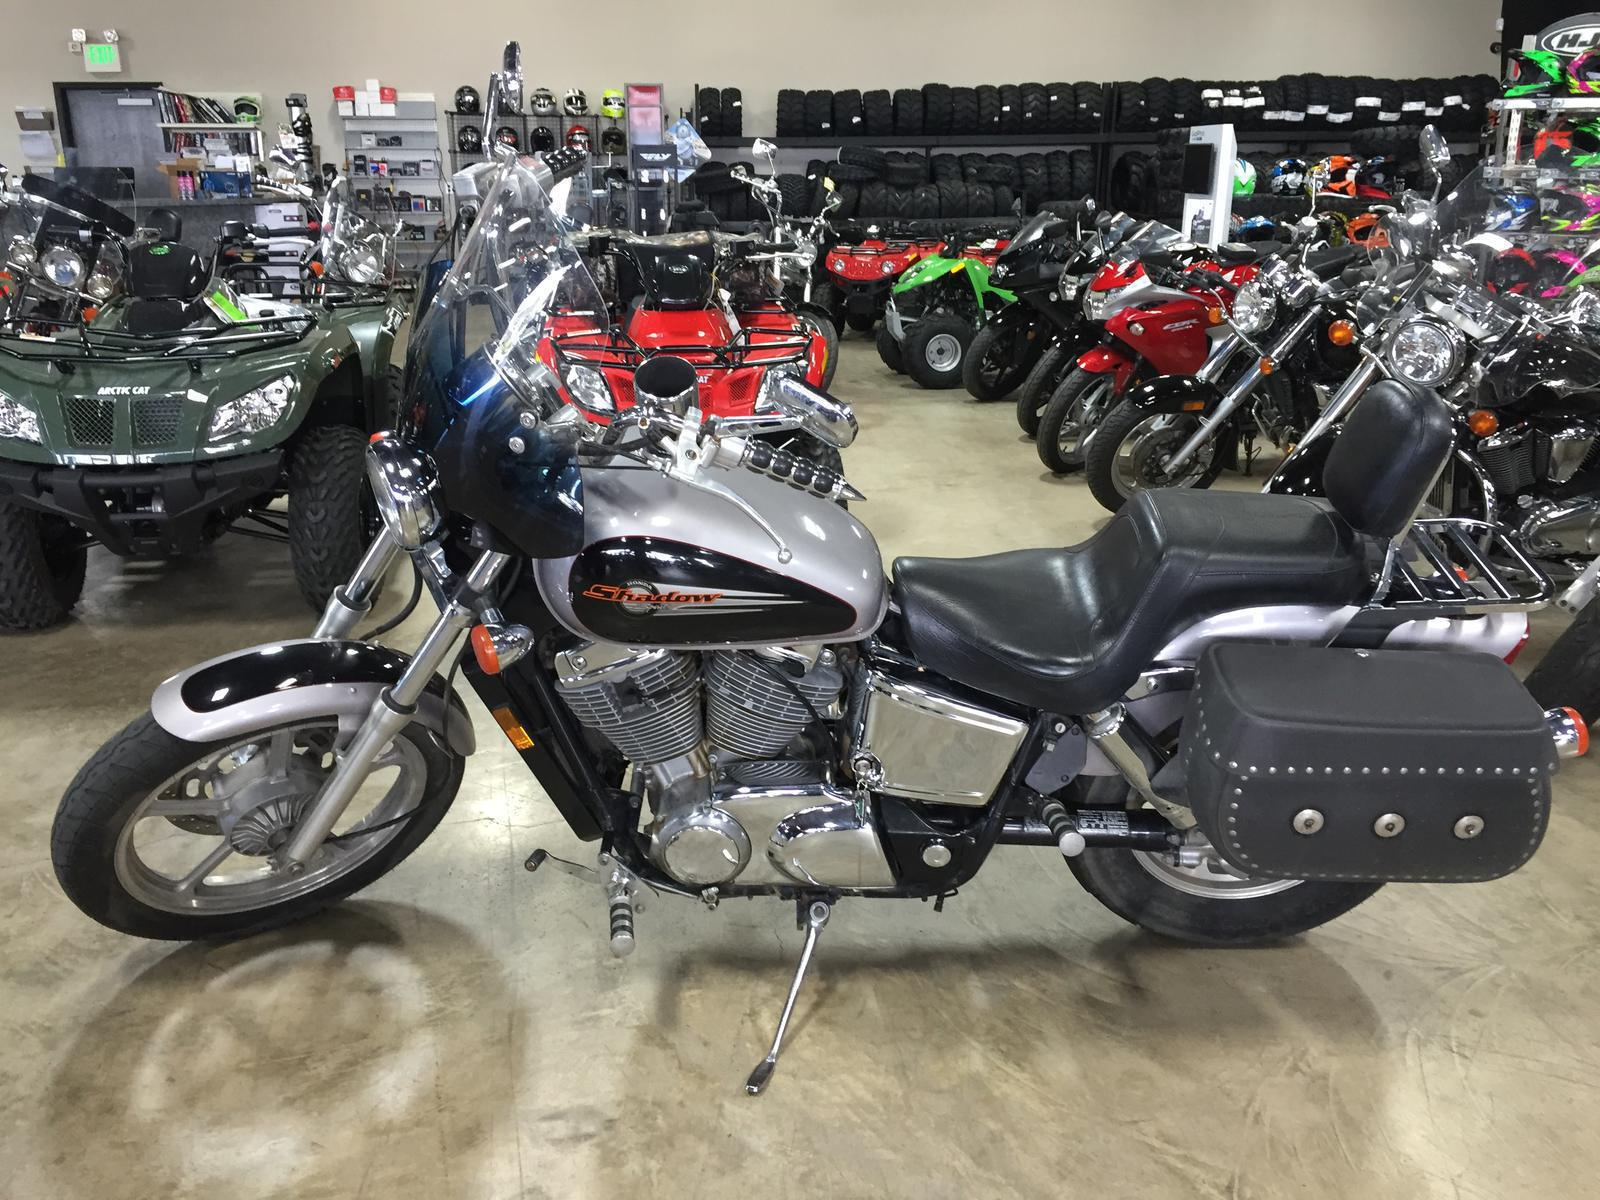 2000 Honda SHADOW SPIRIT 1100 VT1100, motorcycle listing